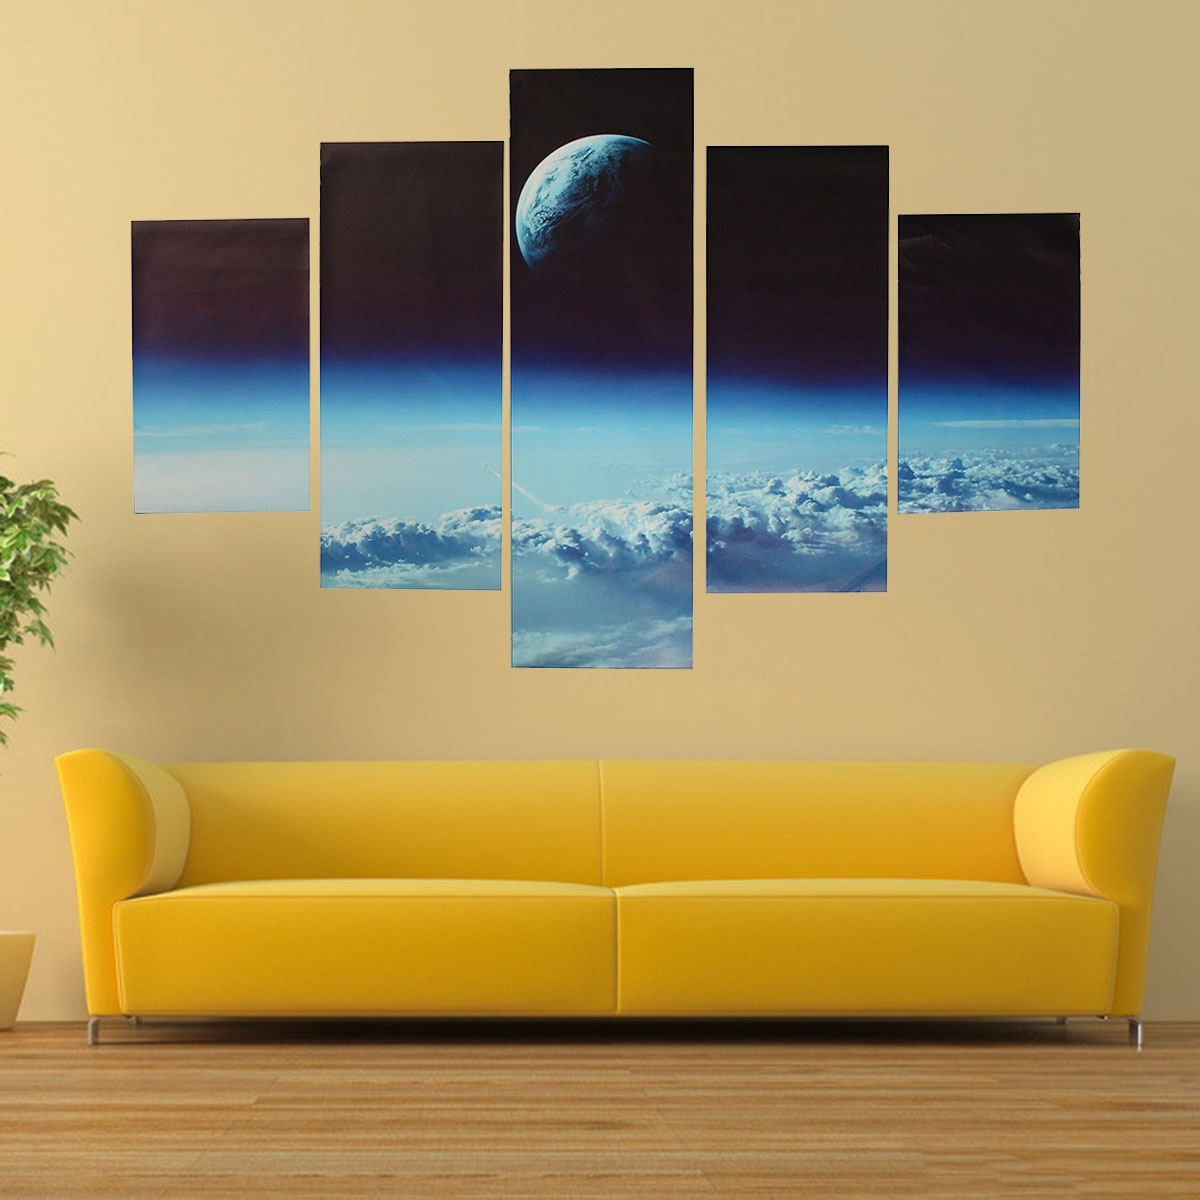 5Pcs Canvas Print Painting Cloud Veil Outer Space Modern Wall Art With Regard To Recent Modern Painting Canvas Wall Art (View 5 of 20)